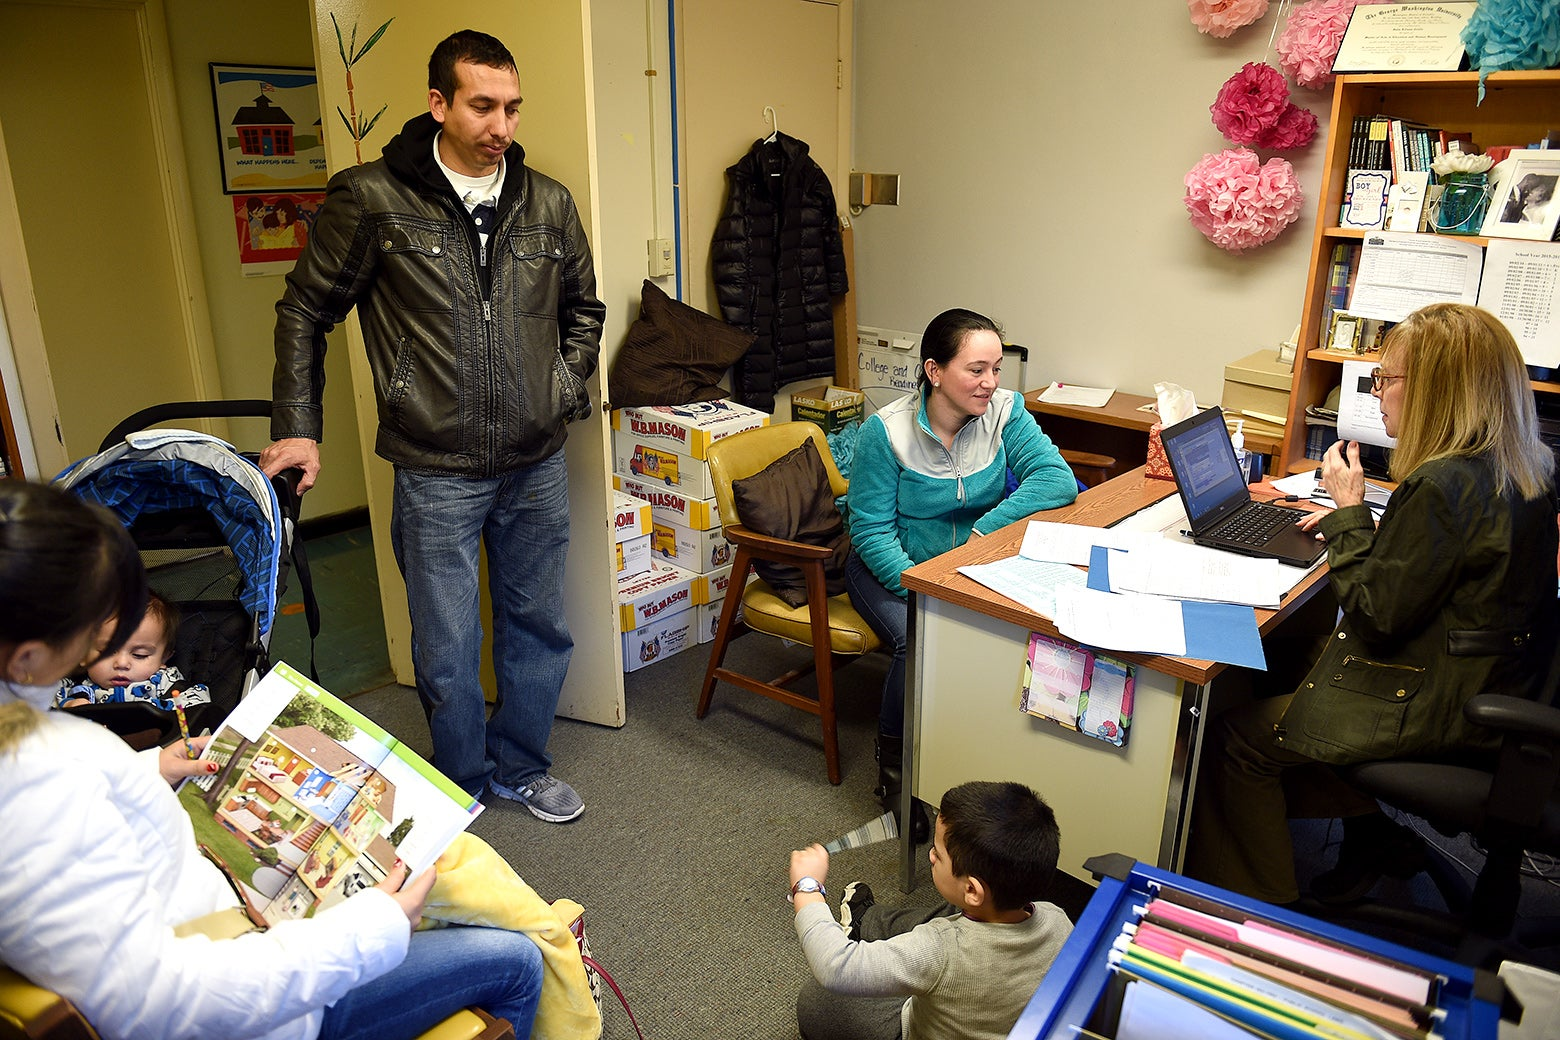 Maura Salguero, sitting, center, processes her daughter Jennifer Garcia Salguero, 12, left, at the International Student Counseling Office at the Judy Hoyer Learning Center of Cool Spring Elementary School in Adelphi, MD on Jan. 13, 2016.